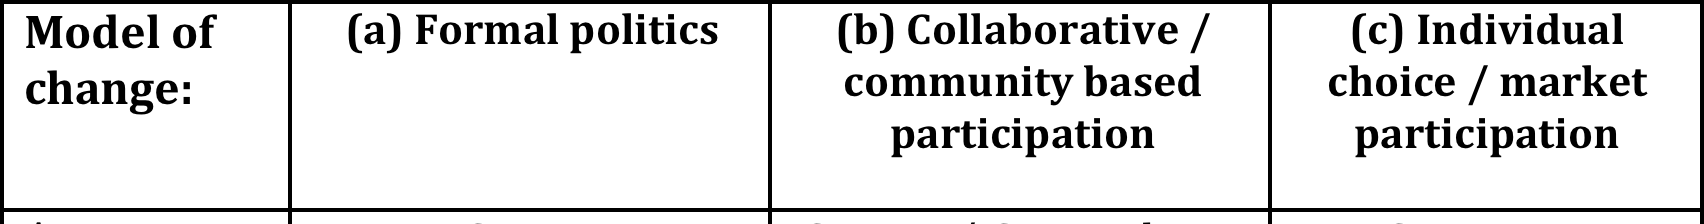 e.g. voting, petitions and direct lobbying of actors in power; (b) participatory, collaborative and/or community based action: including collaboration